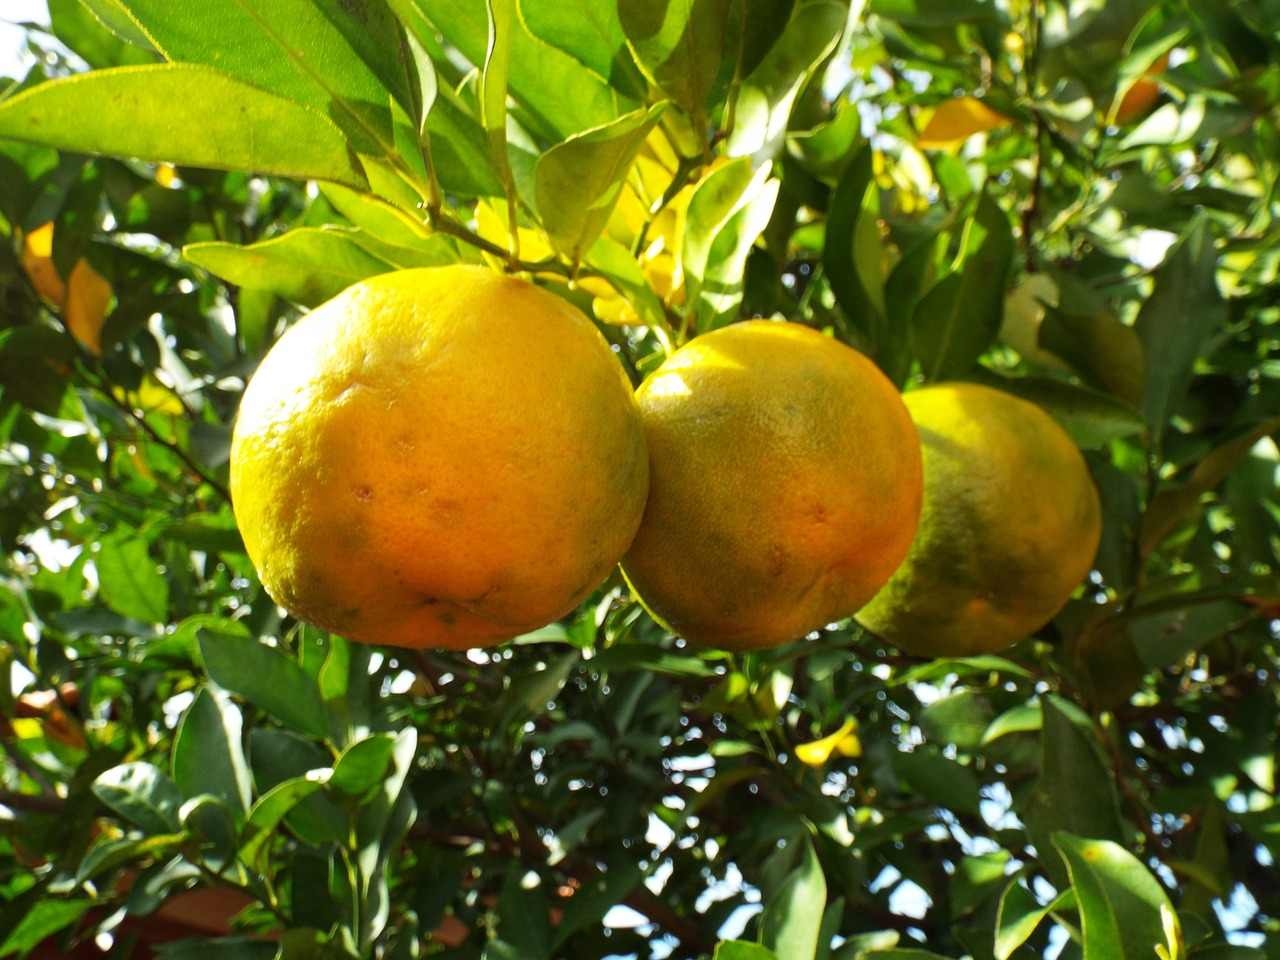 From Brunch to Obsession: Bergamot Oranges